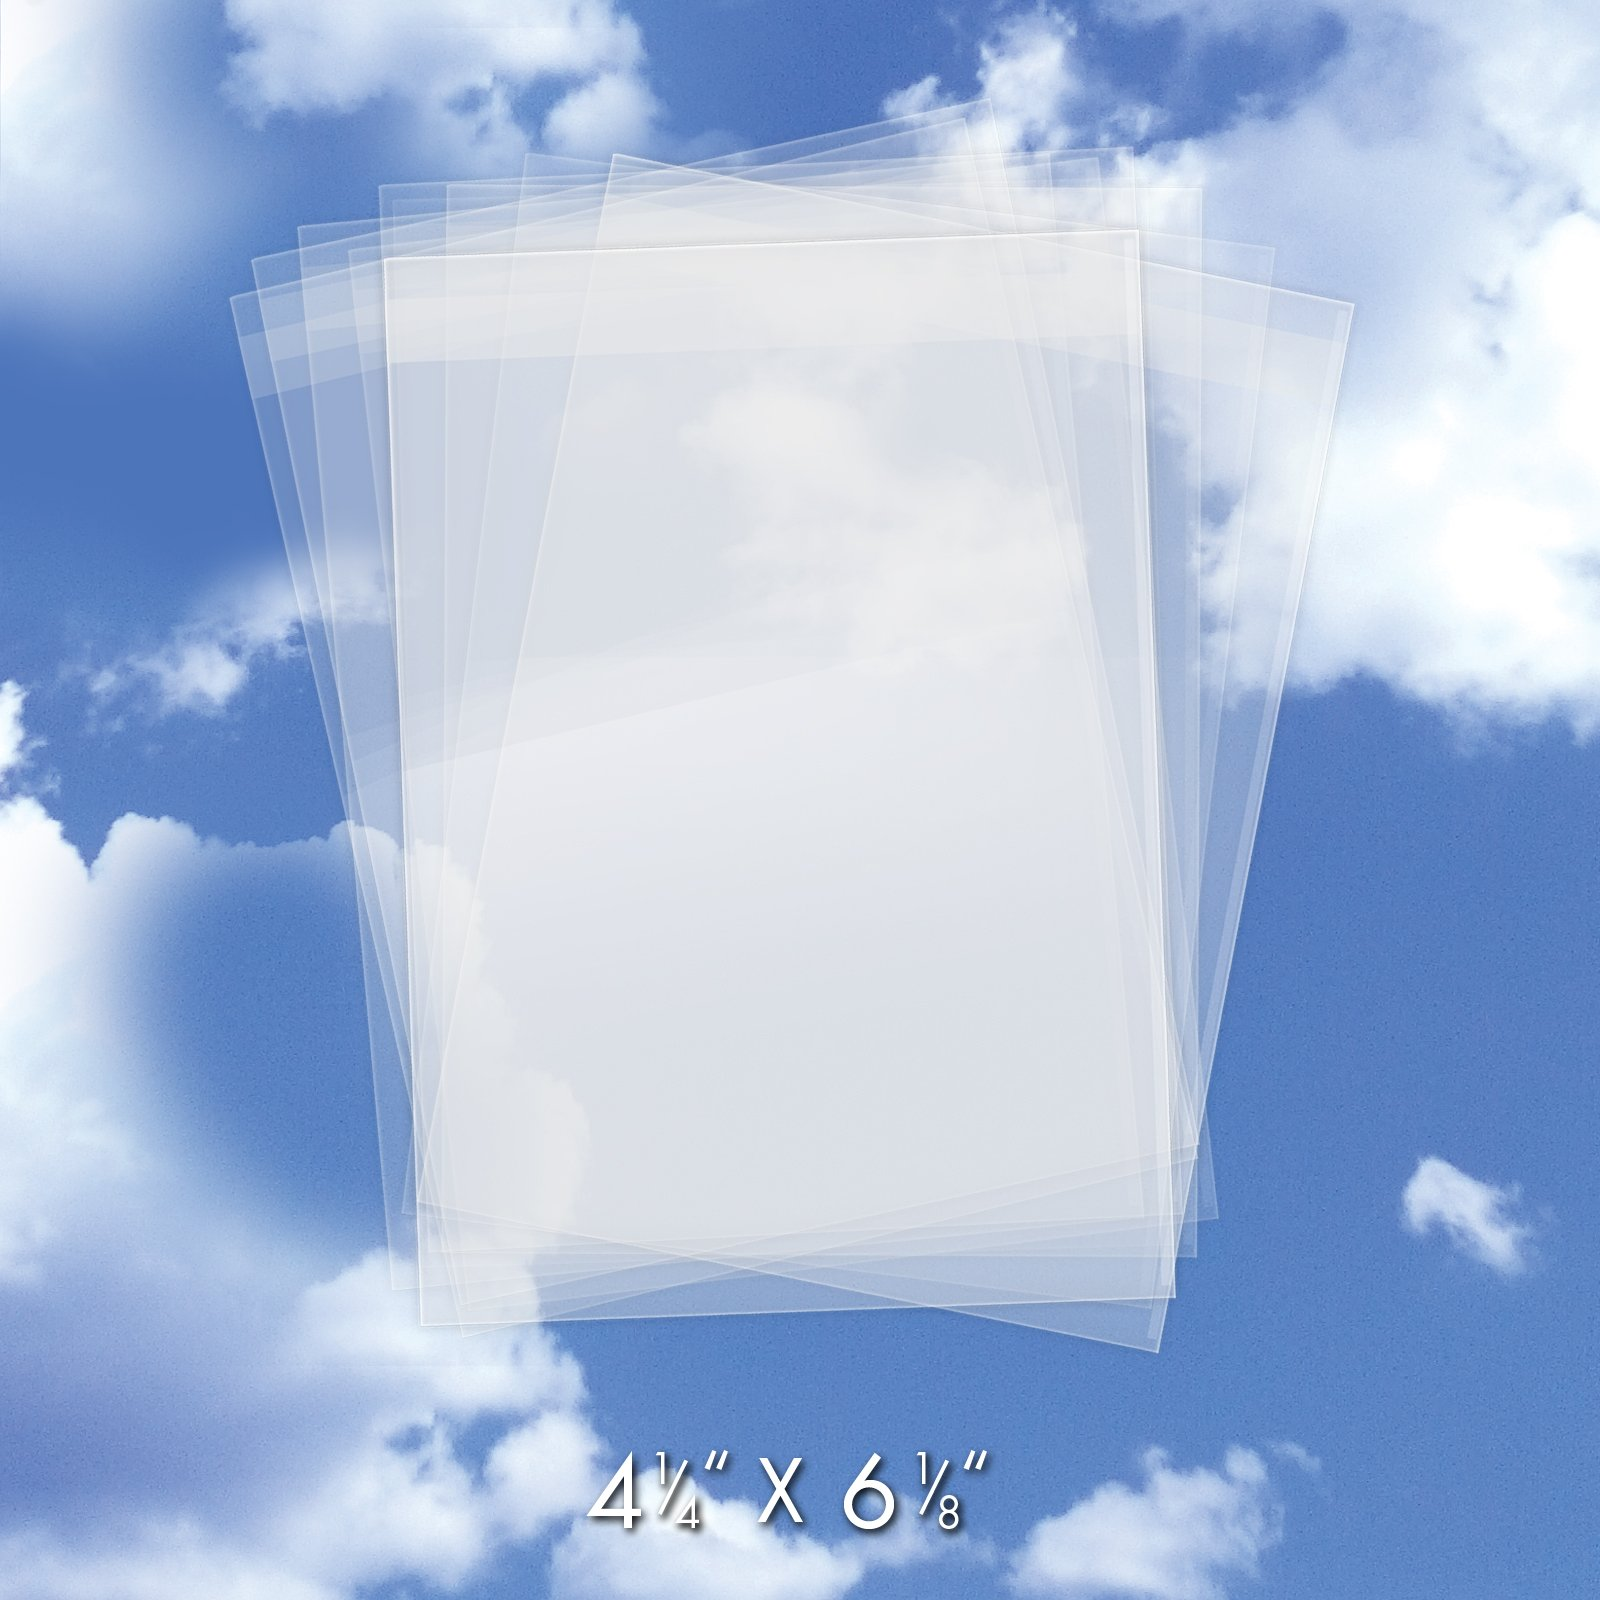 "200 Crystal Clear Plastic Cello Bags (4-1/4"" x 6-1/8"") - Bulk Resealable Cellophane Sleeves w/Self Adhesive Flap - For Greeting Cards, Photos, Art - USPS Mailer (1.2 Mil Thick) #CELLO4-1/4X6-1/8CL200"